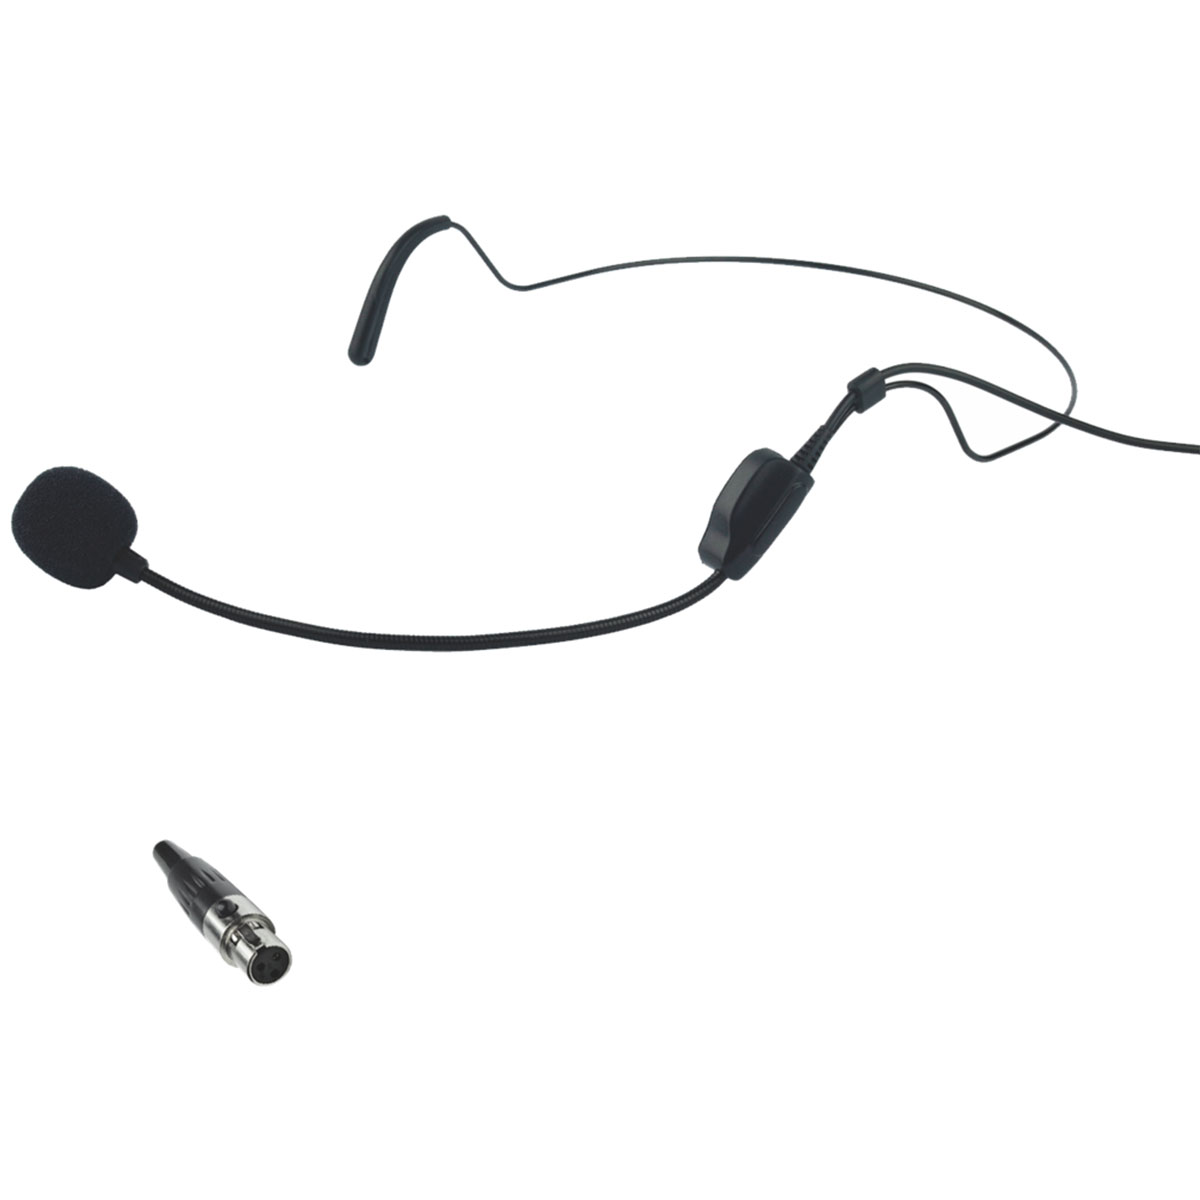 HSM03MX - Microfone c/ Fio Headset / Cabe�a HSM 03 MX - Lyco